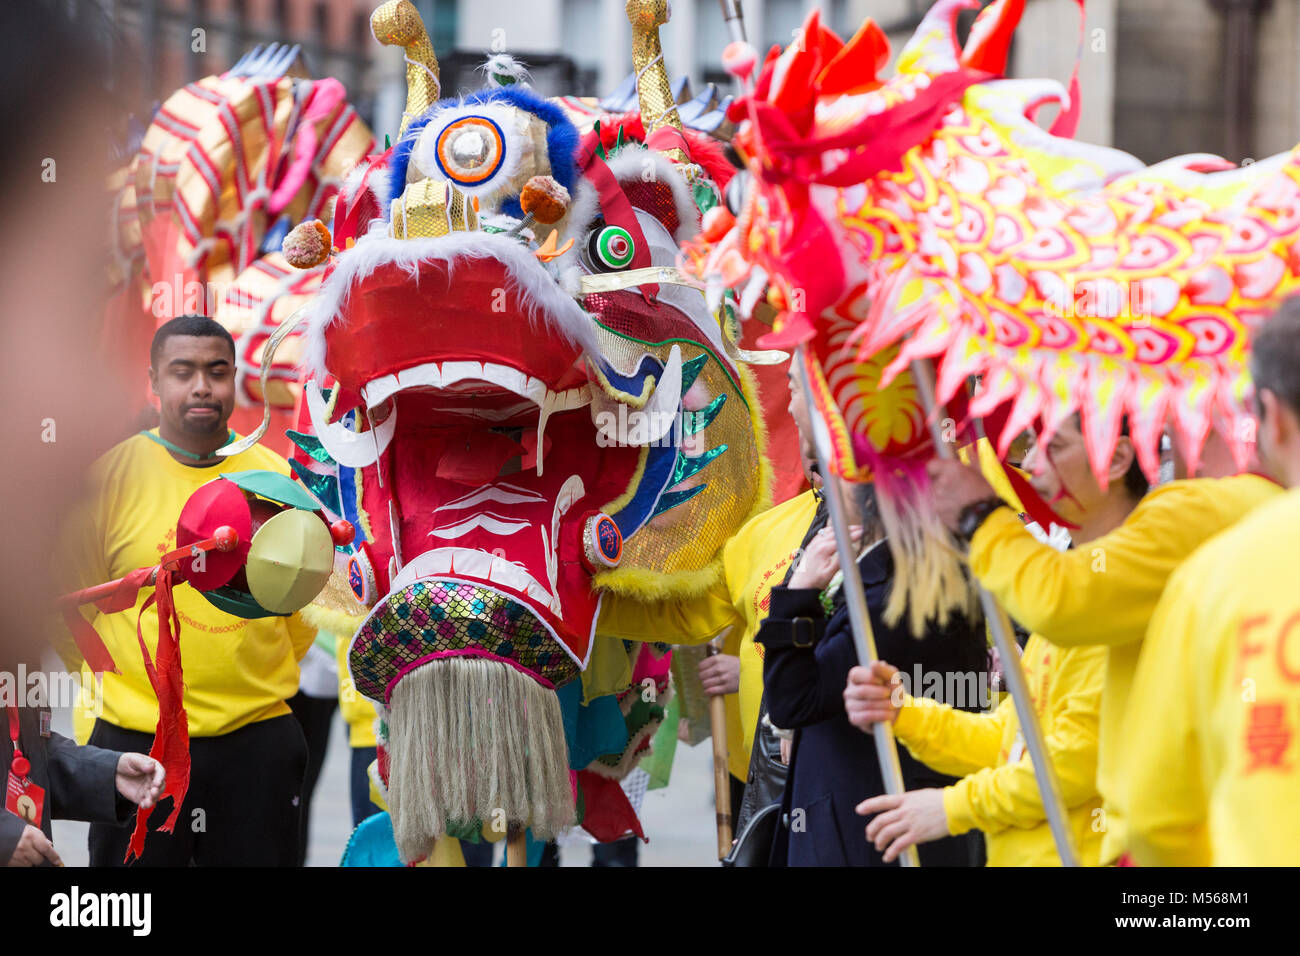 Chinese New Year 2018 celebrations in Manchester - The Year of the Dog. - Stock Image